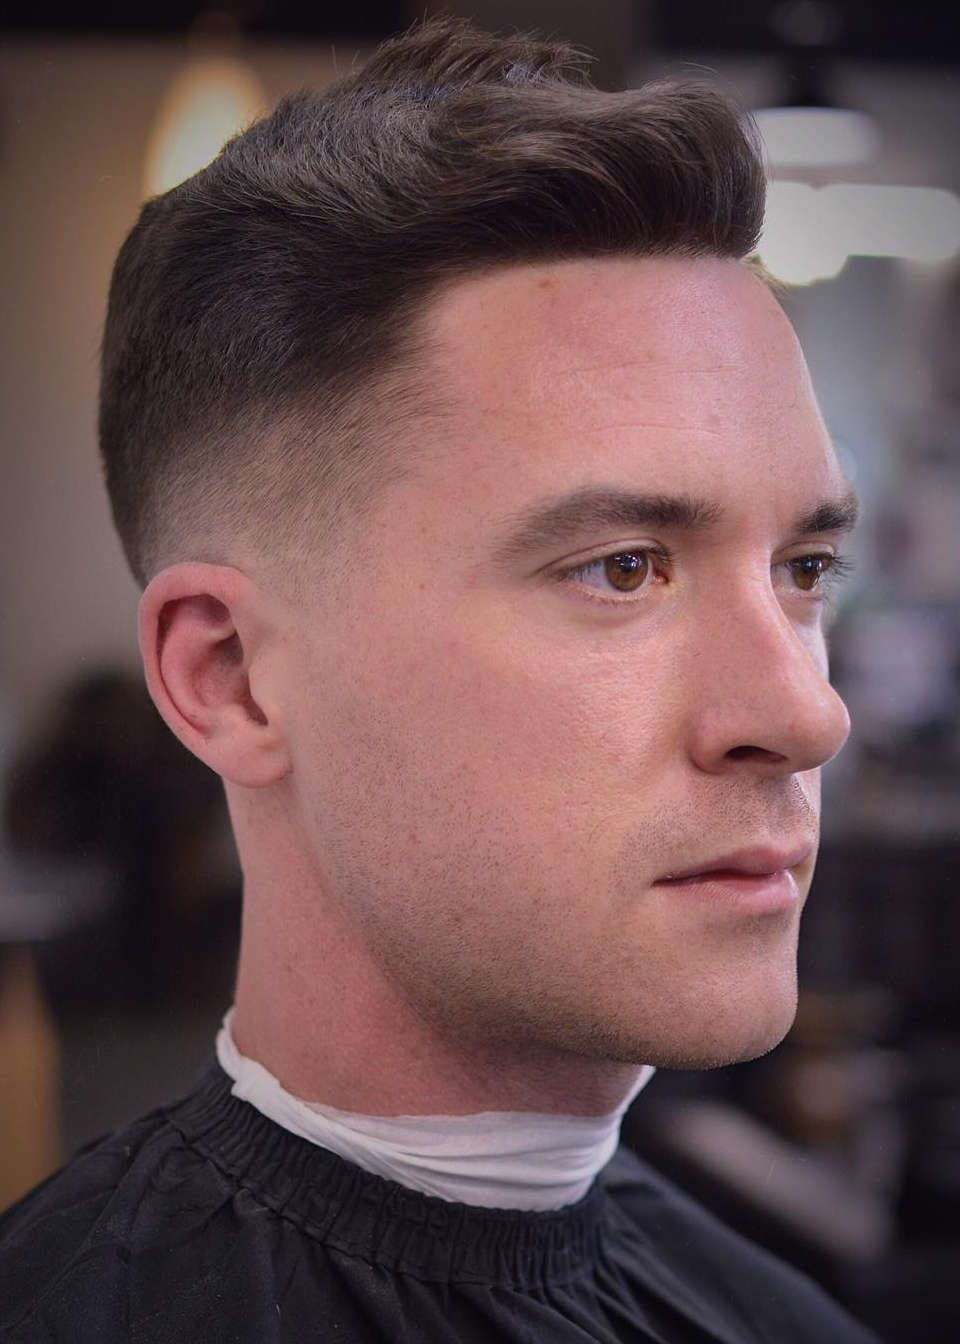 24++ Haircuts for guys with thin hair on top trends